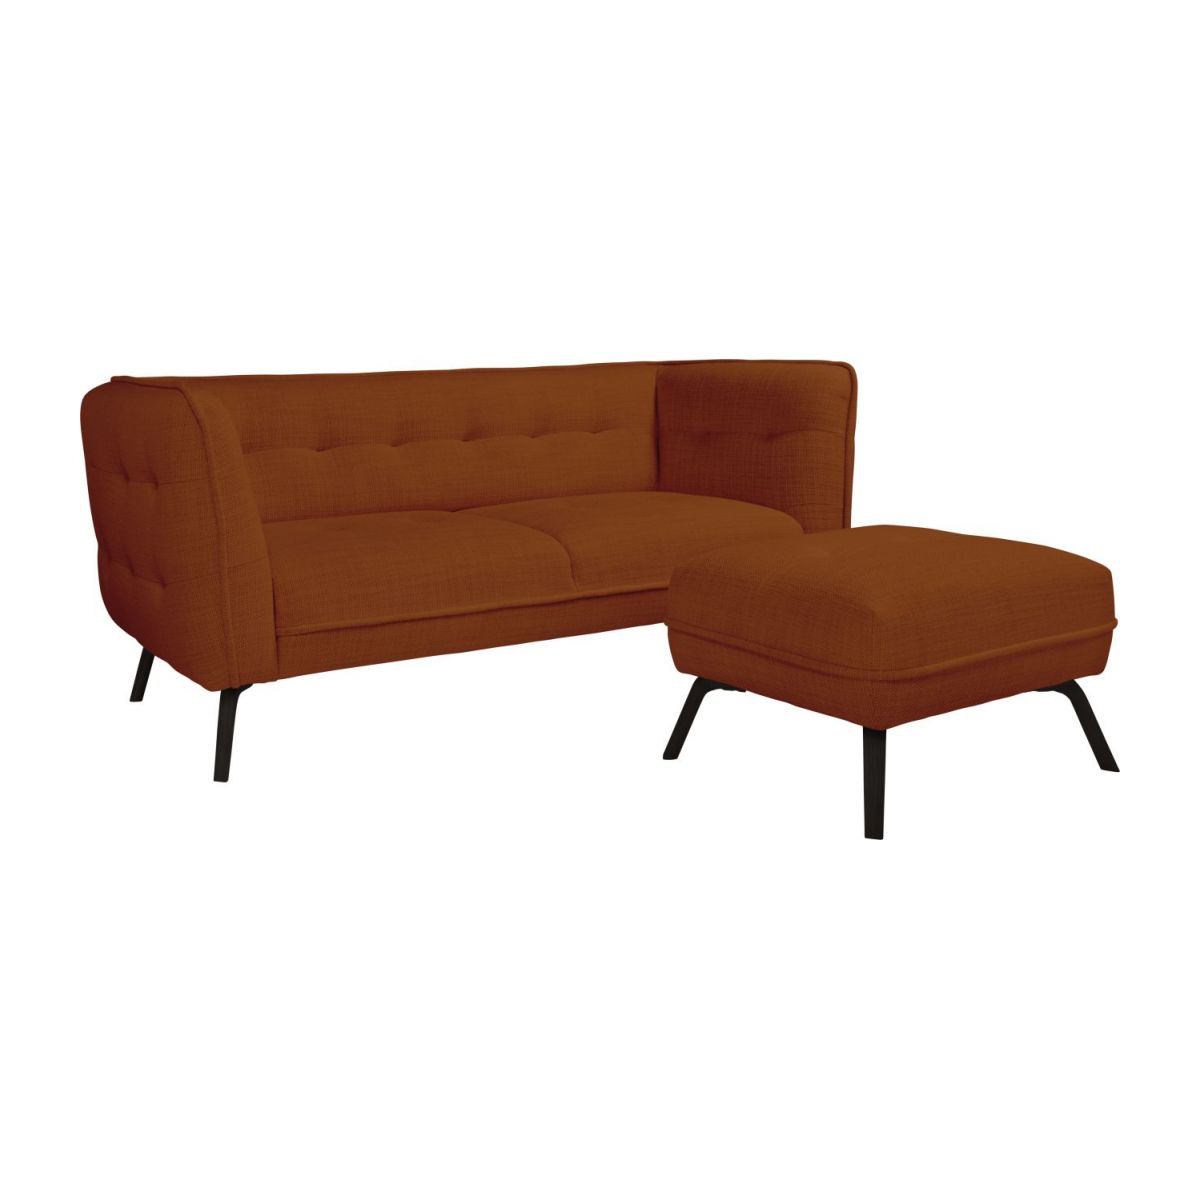 2 seater sofa in Fasoli fabric, warm red rock and dark legs n°8